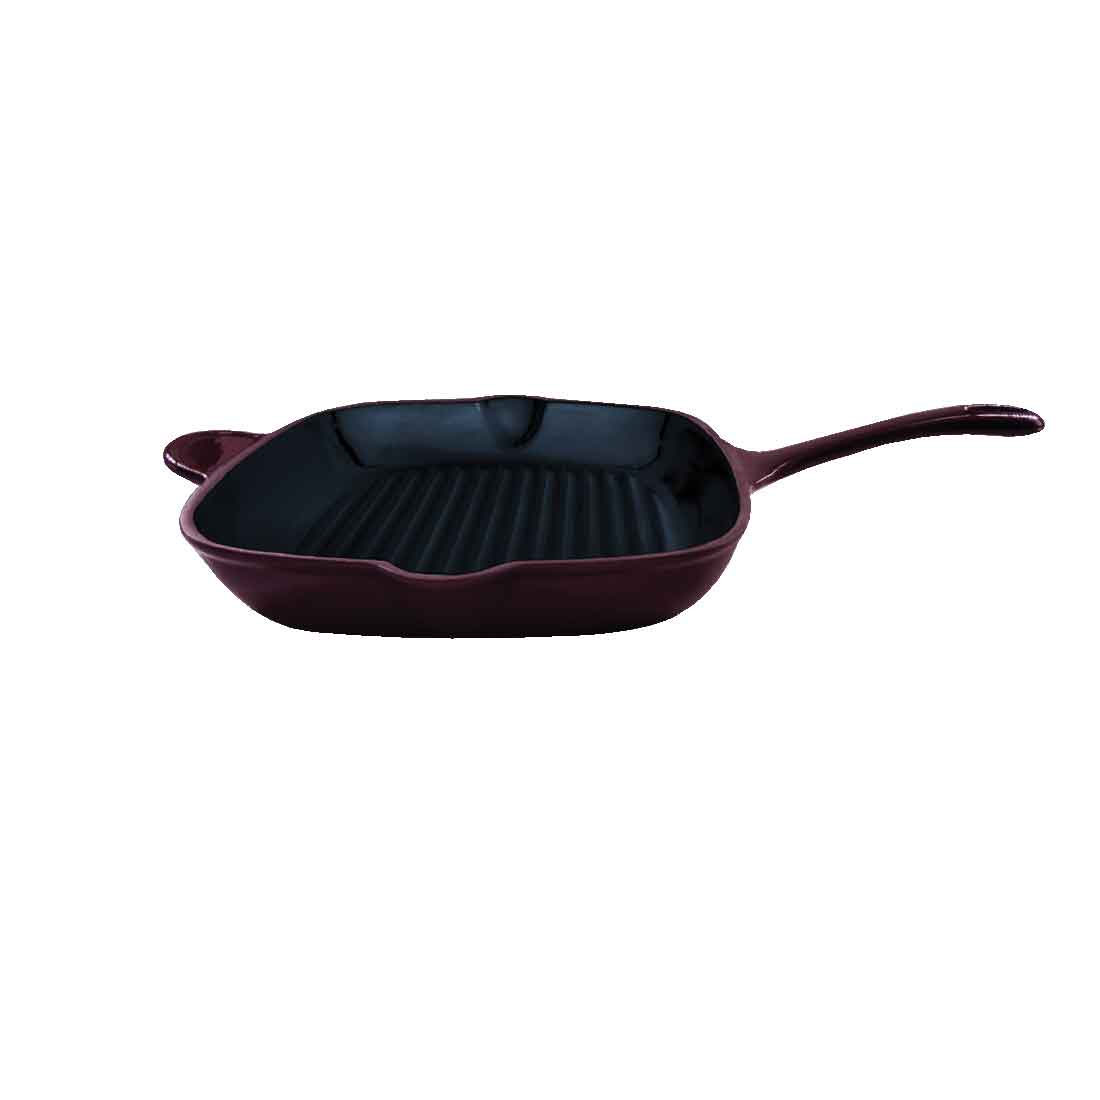 Ferro Cast-Iron Grill Pan - 29.5cm, 2.6L, 4.5mm, Majolica R